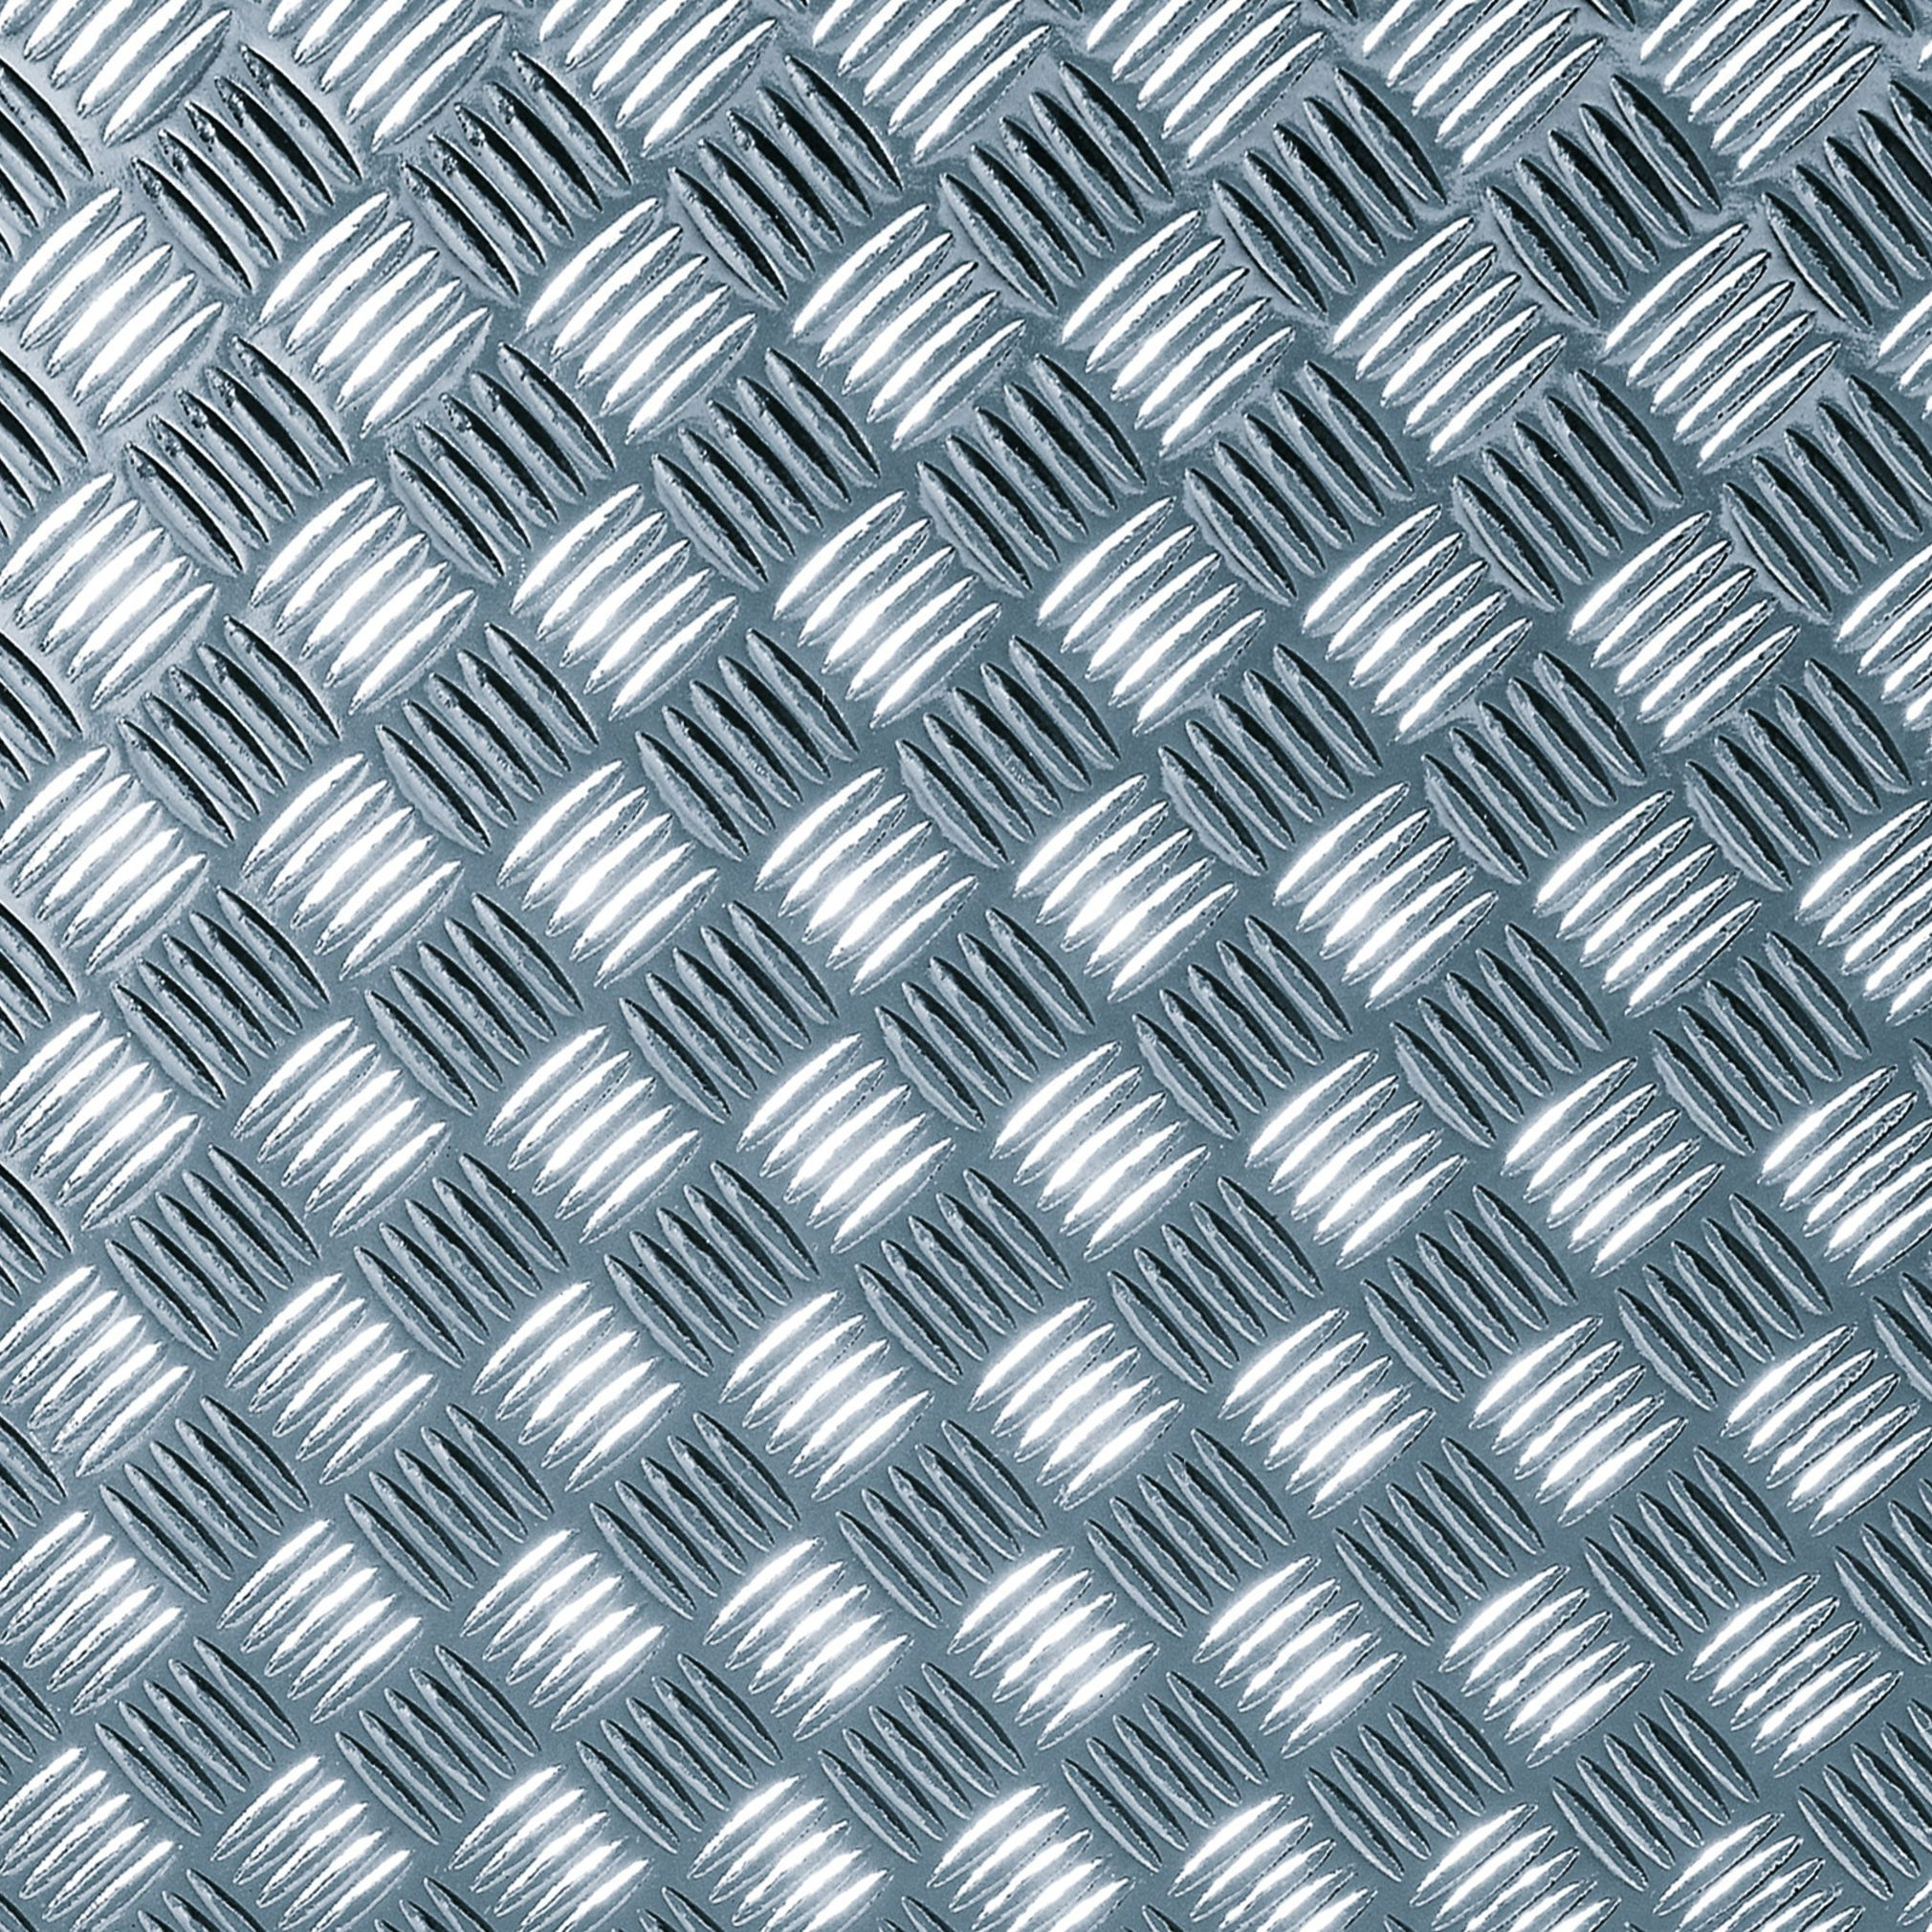 D c fix criss cross checkerboard metallic effect silver for Plaque inox adhesive